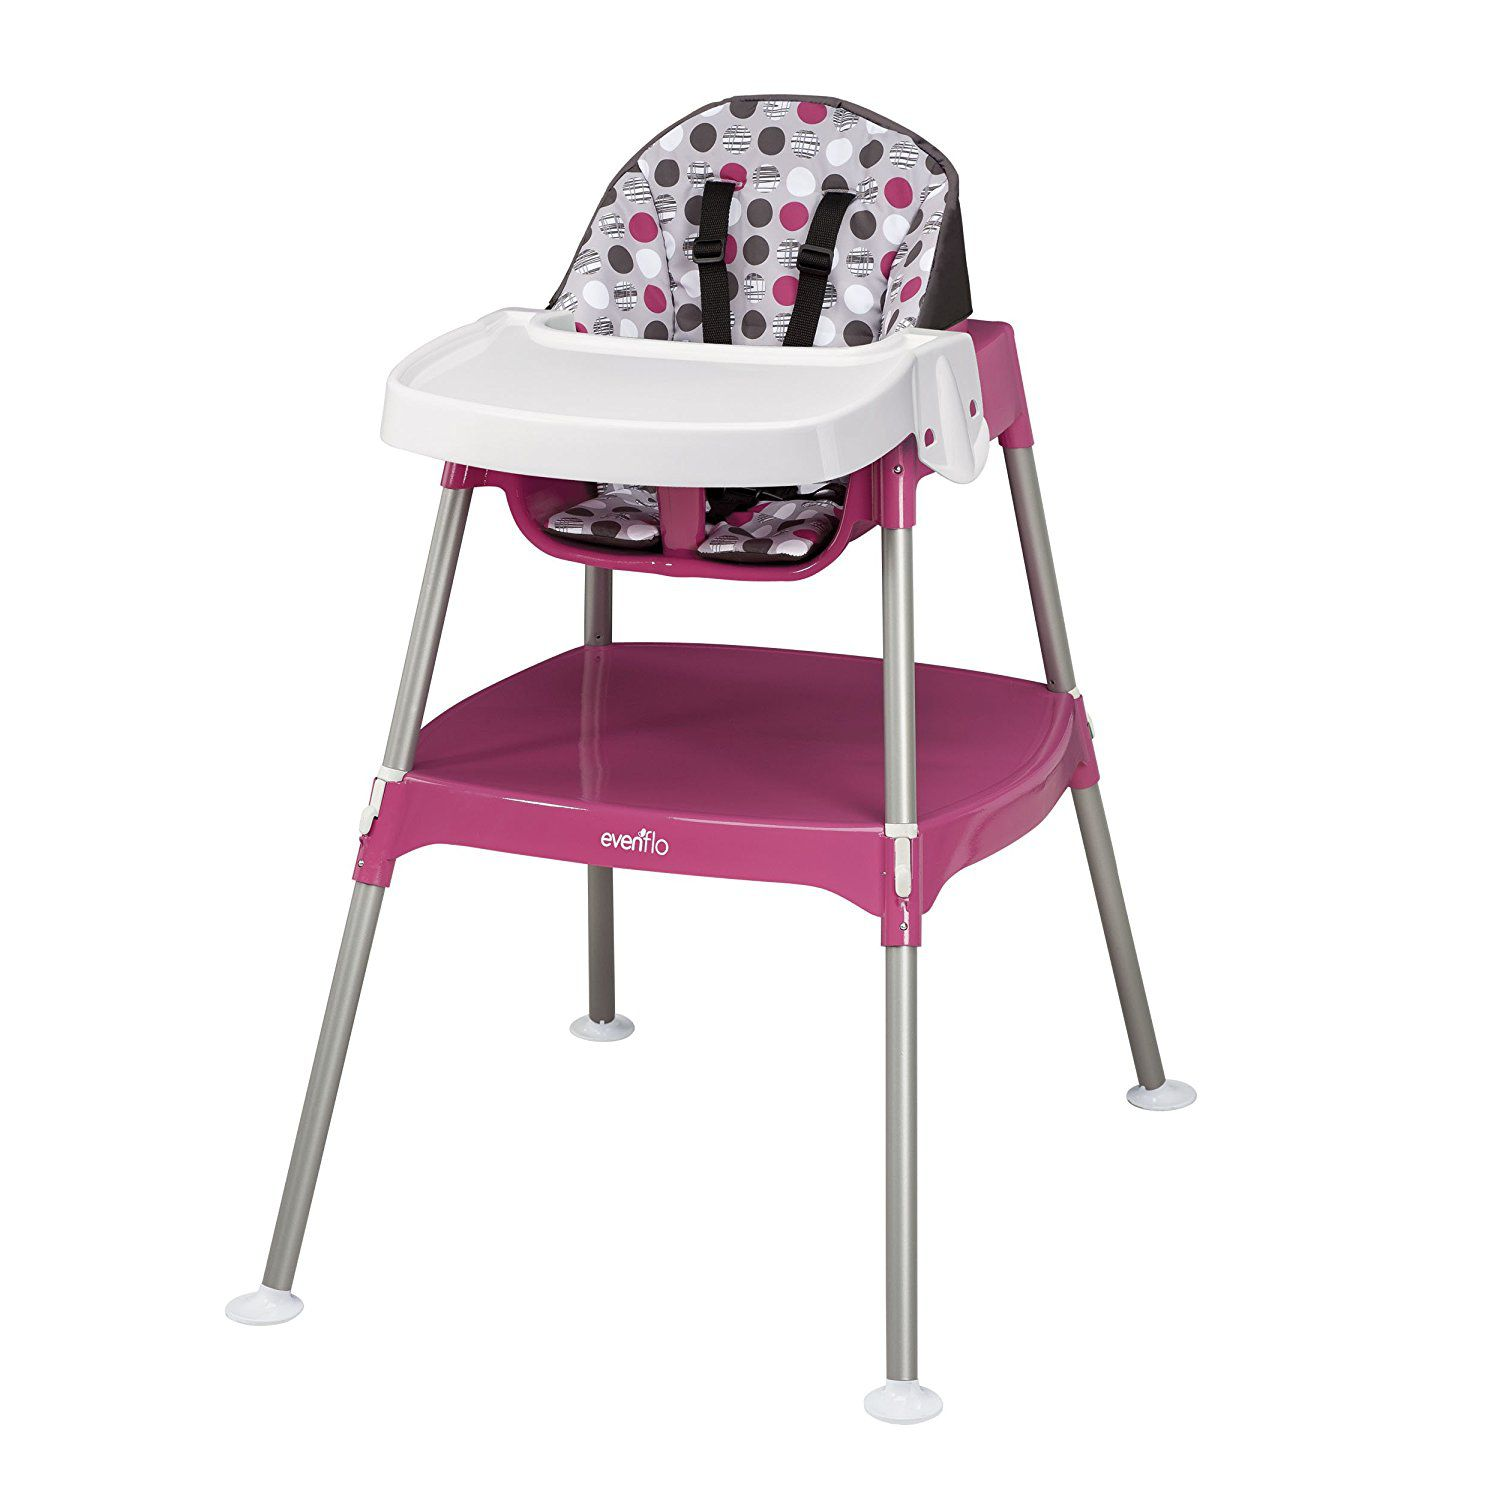 11 Bud Friendly High Chairs Under $100